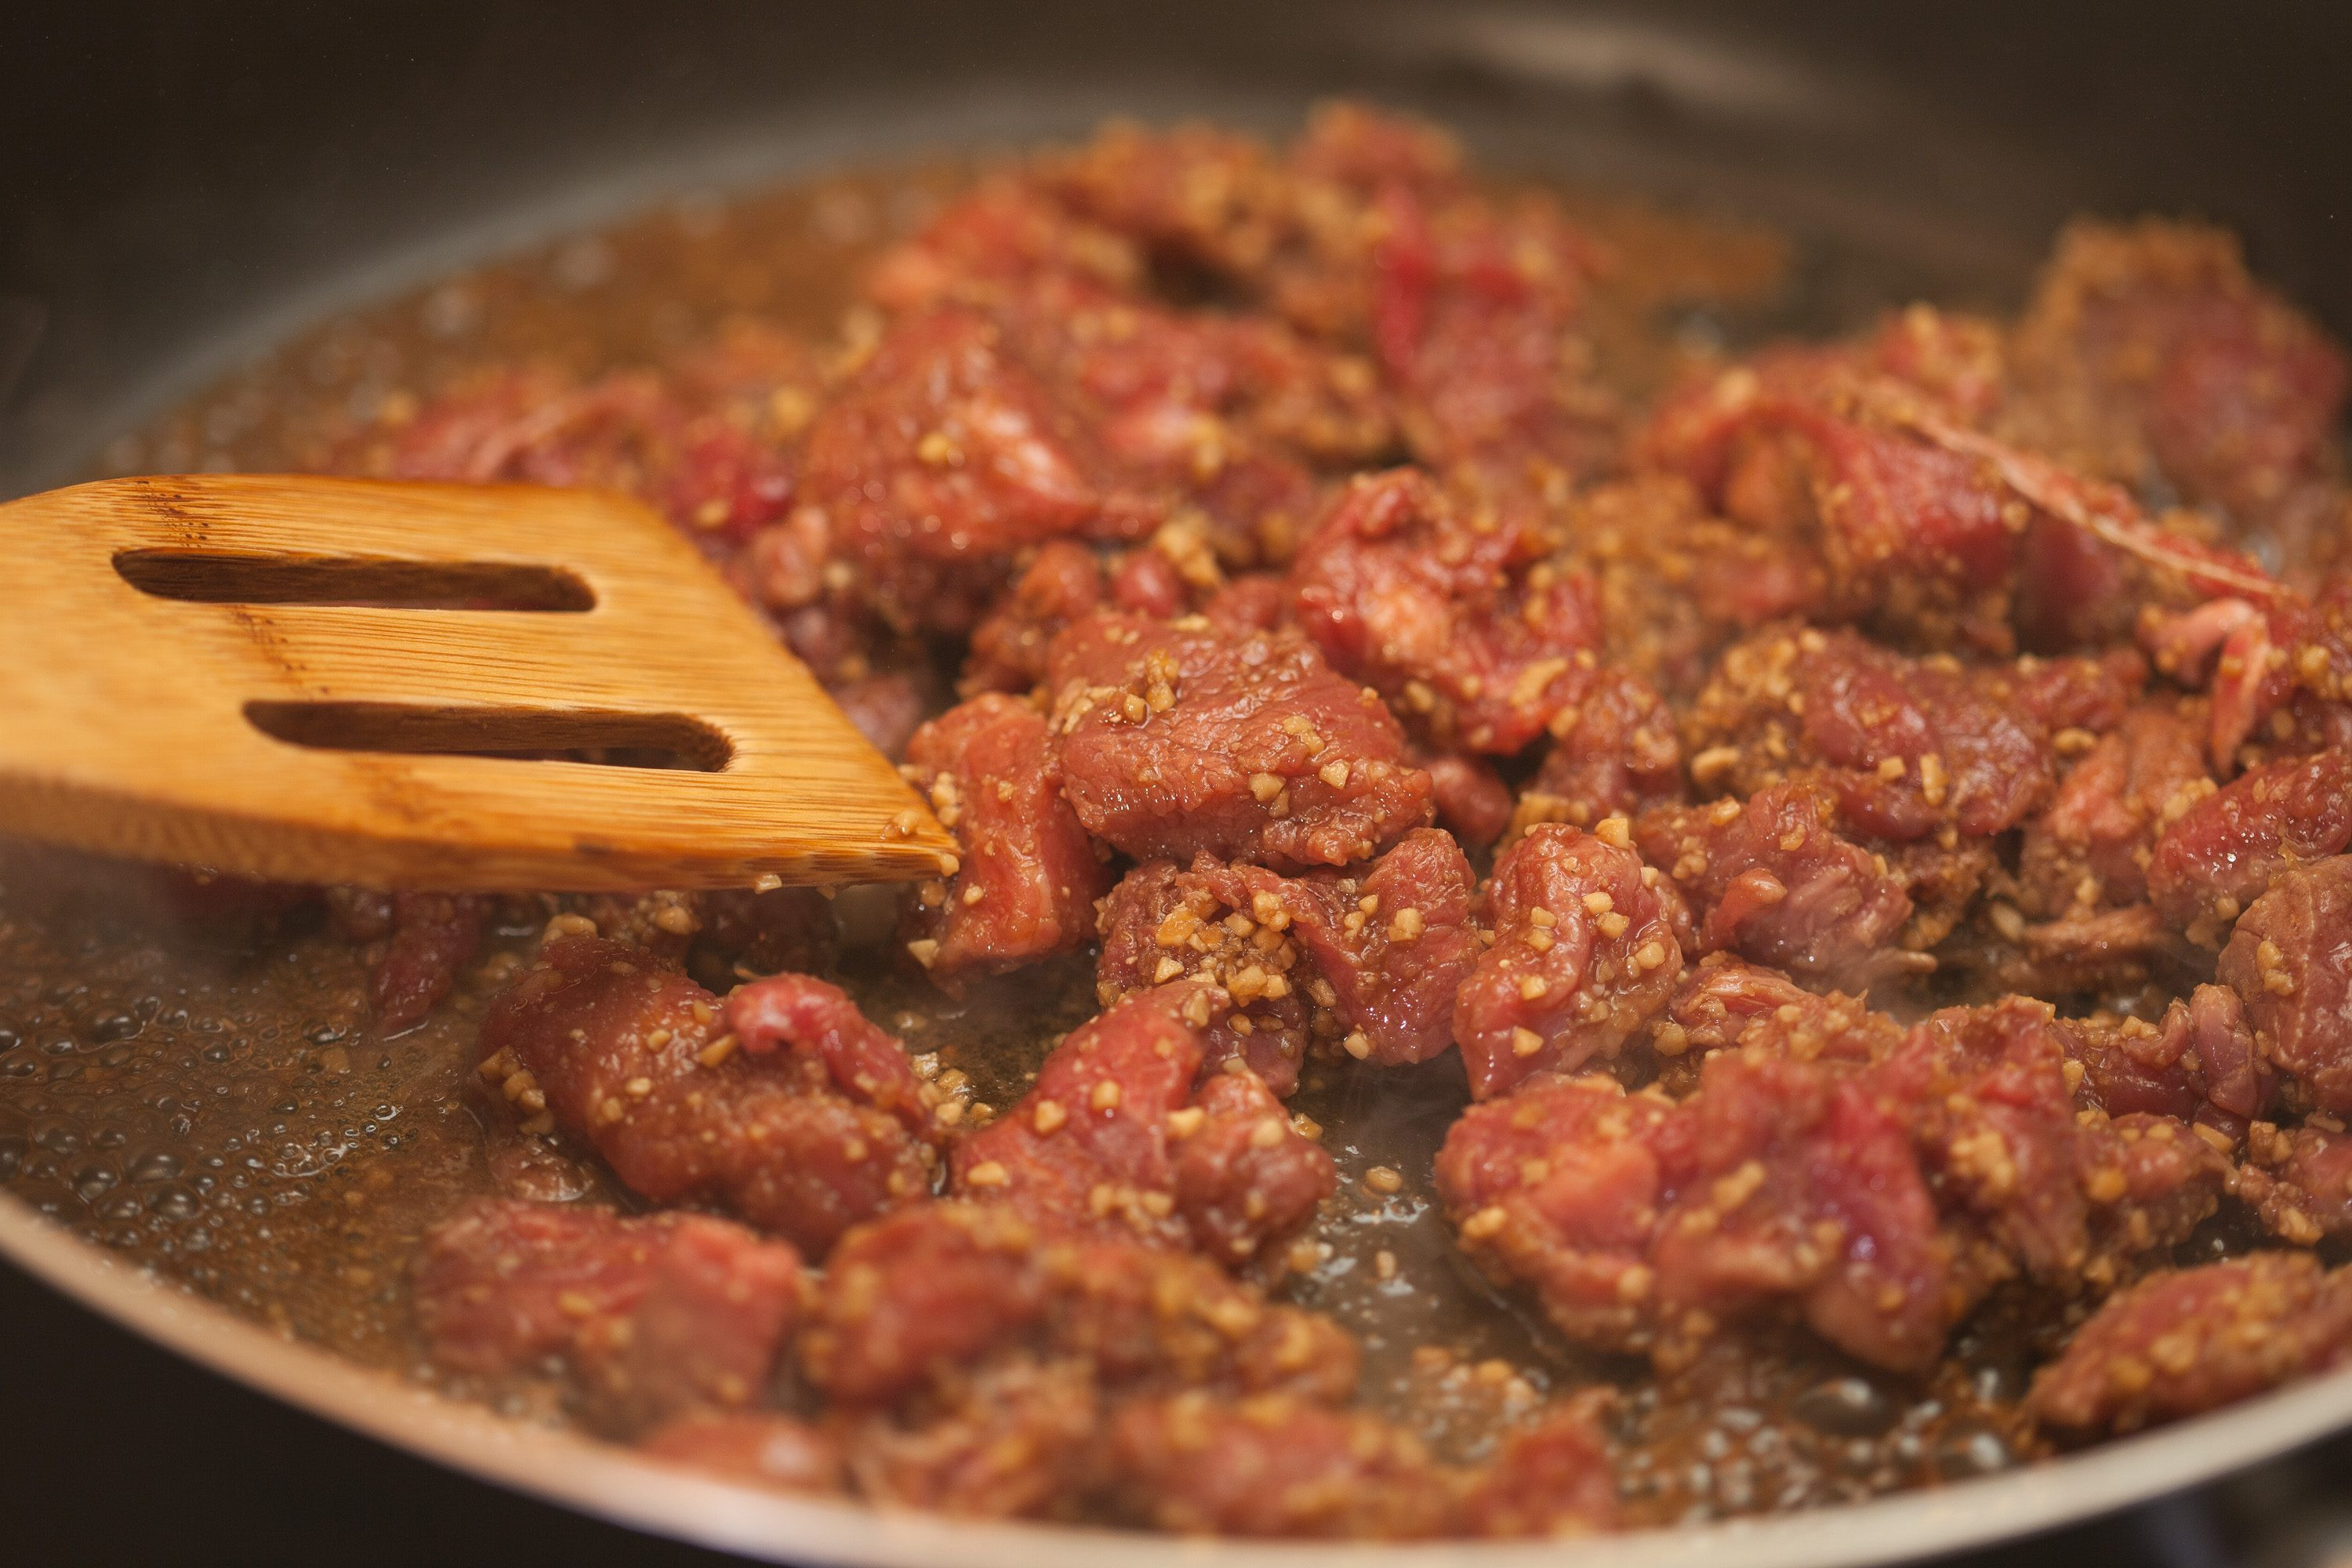 How To Make Stew Meat Tender  How to Make Stew Meat Tender